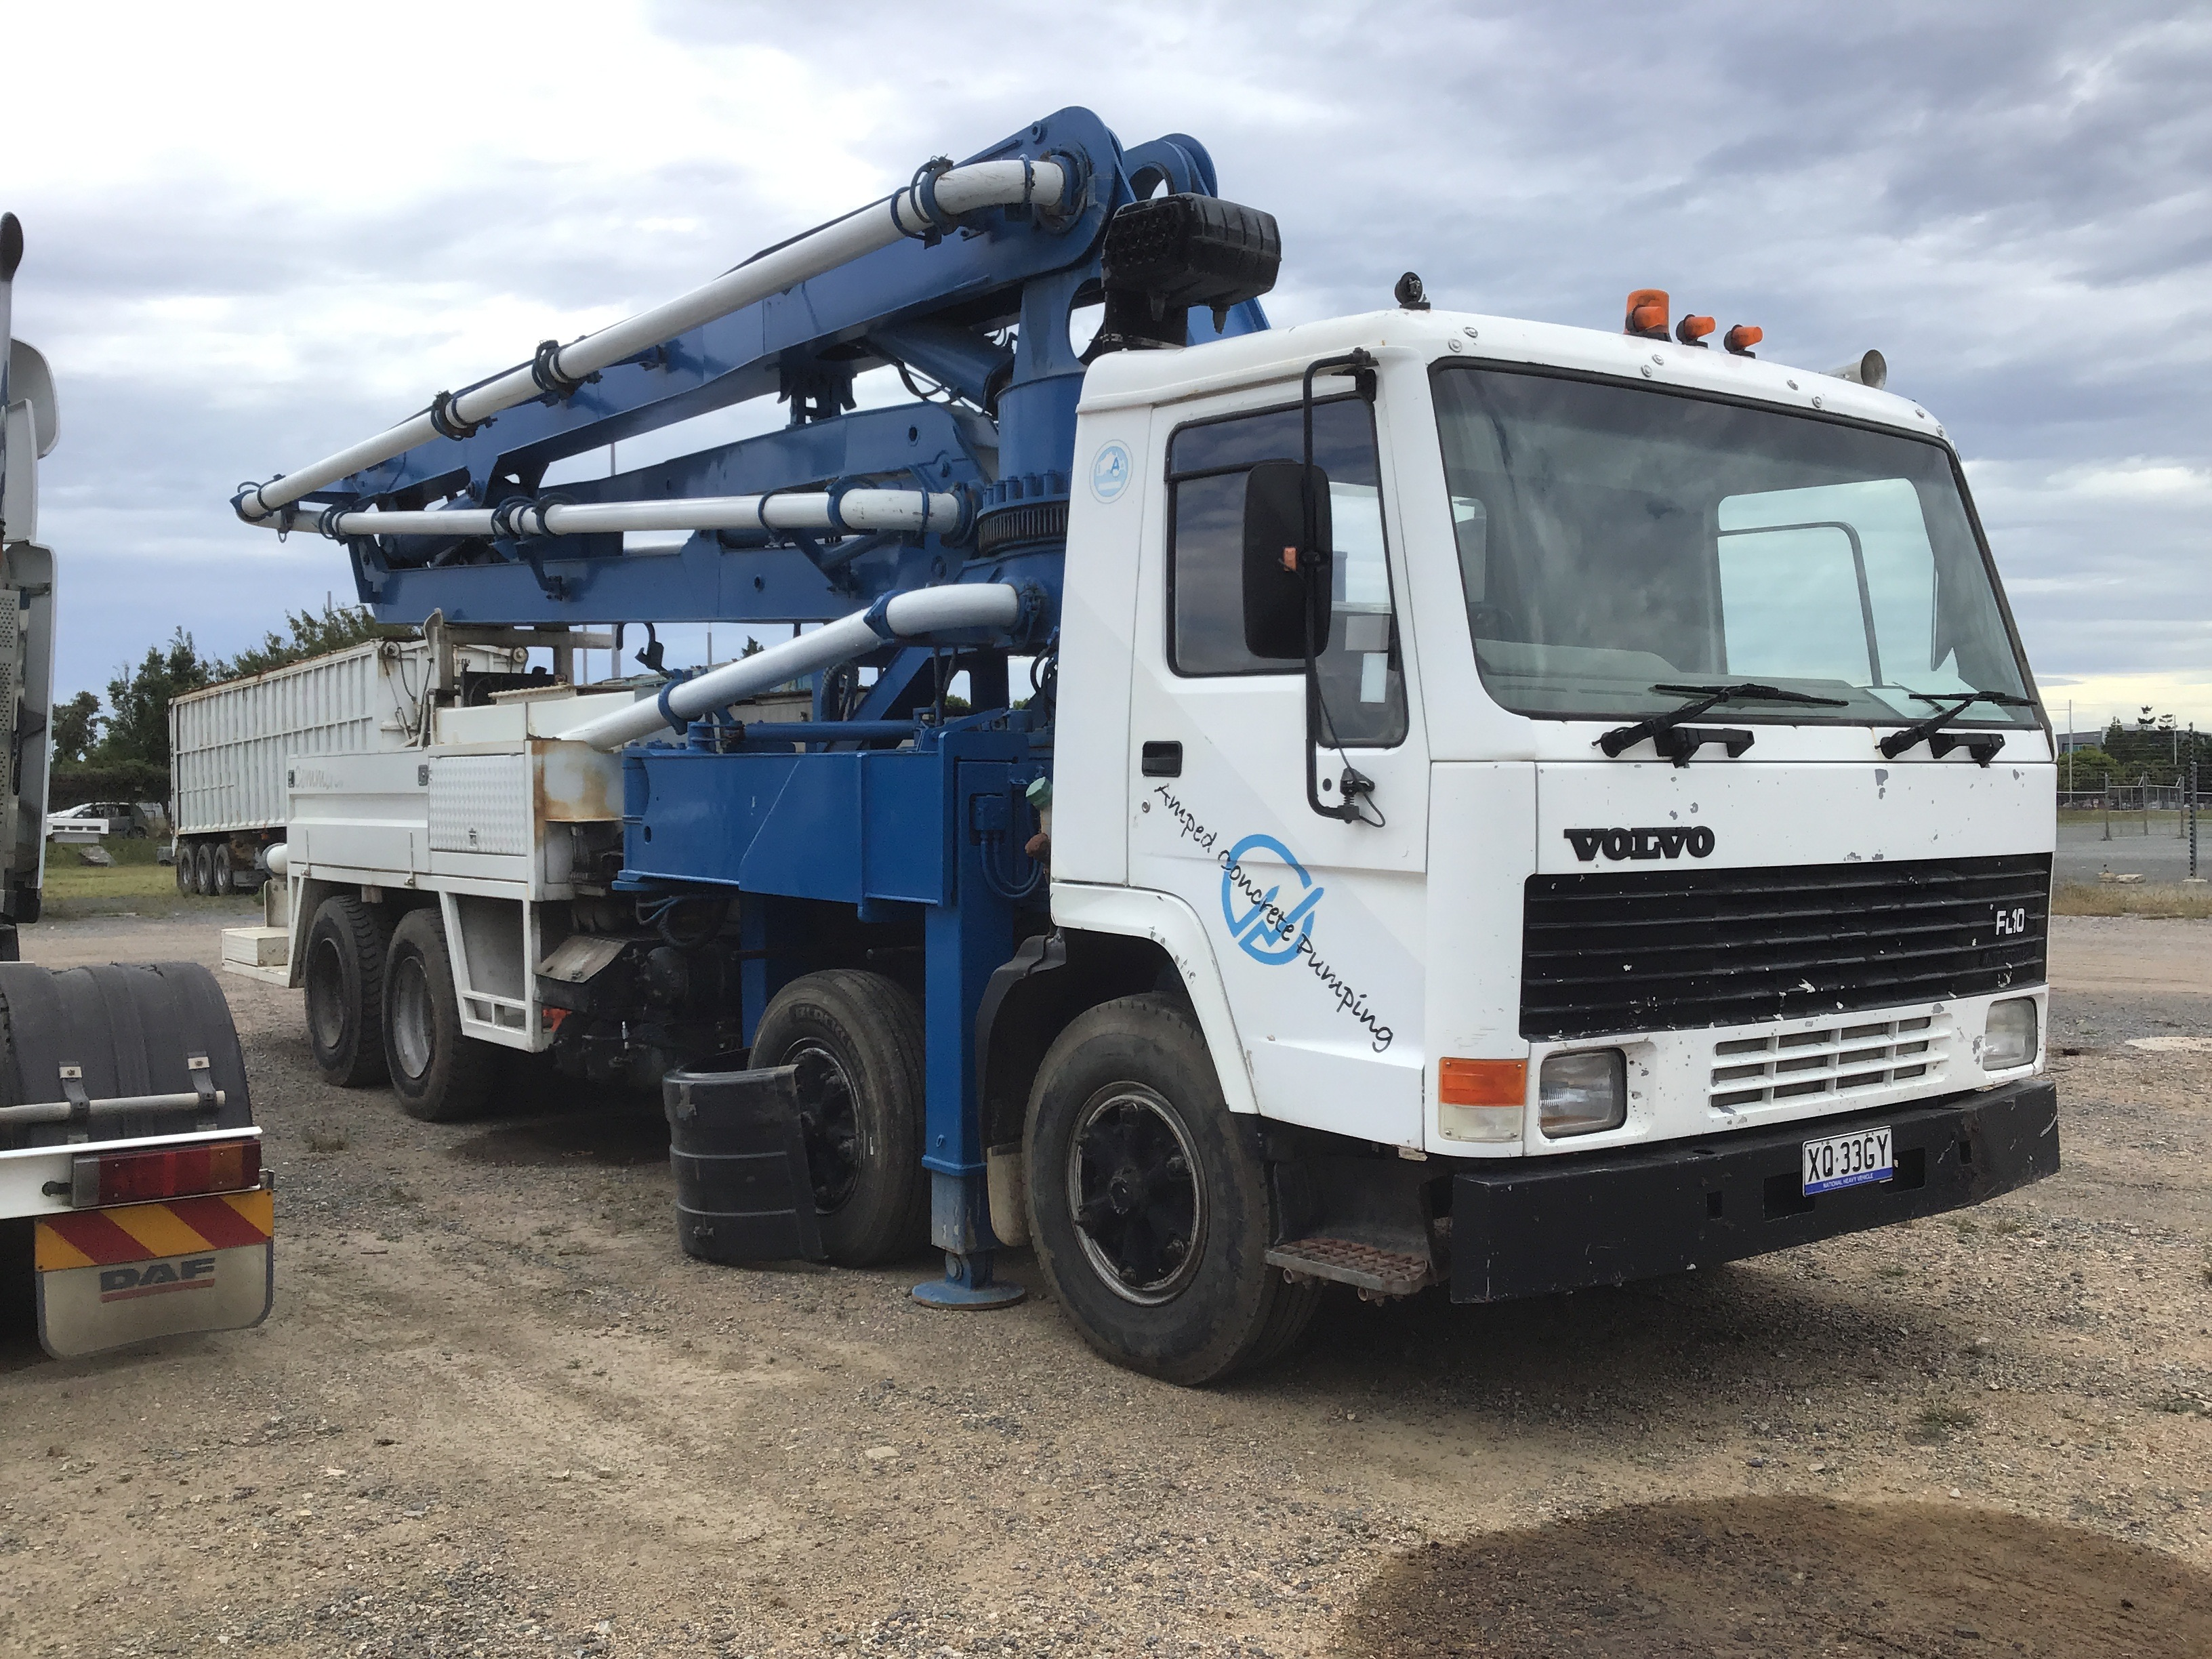 1988 Volvo FL10 6 x 4 Concrete Pump Truck with Placing Boom